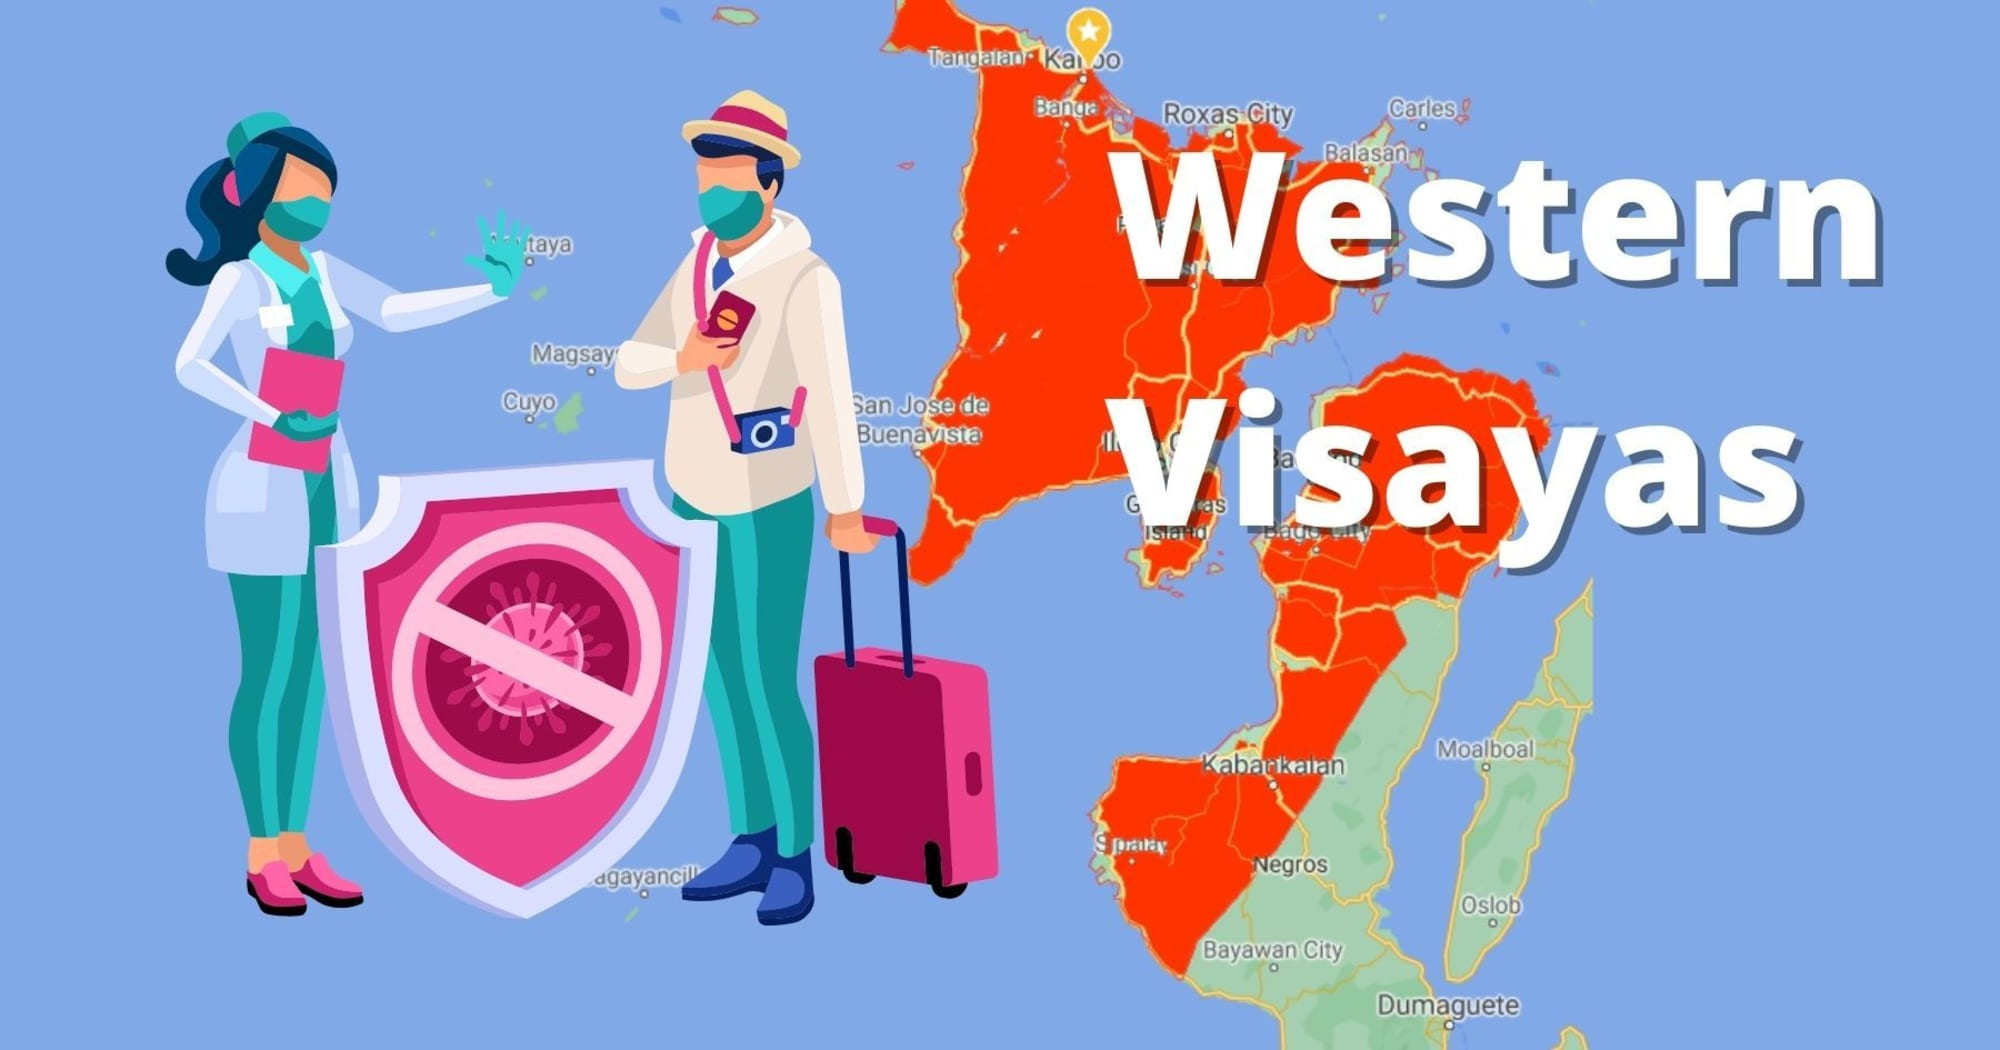 Western Visayas temporarily restricts their borders